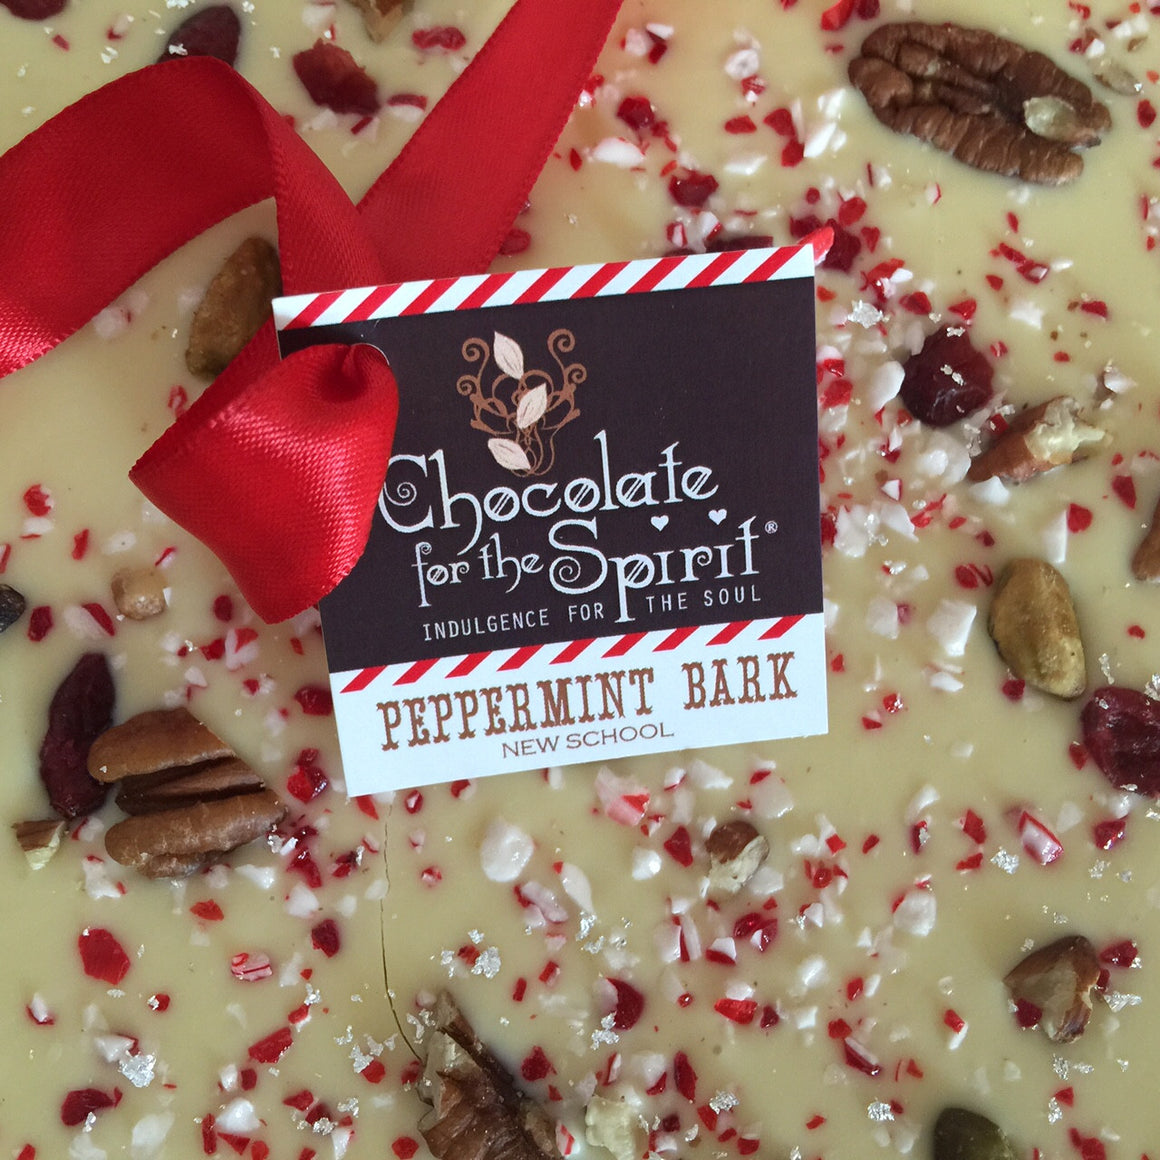 Peppermint Bark - New School - Award-Winner